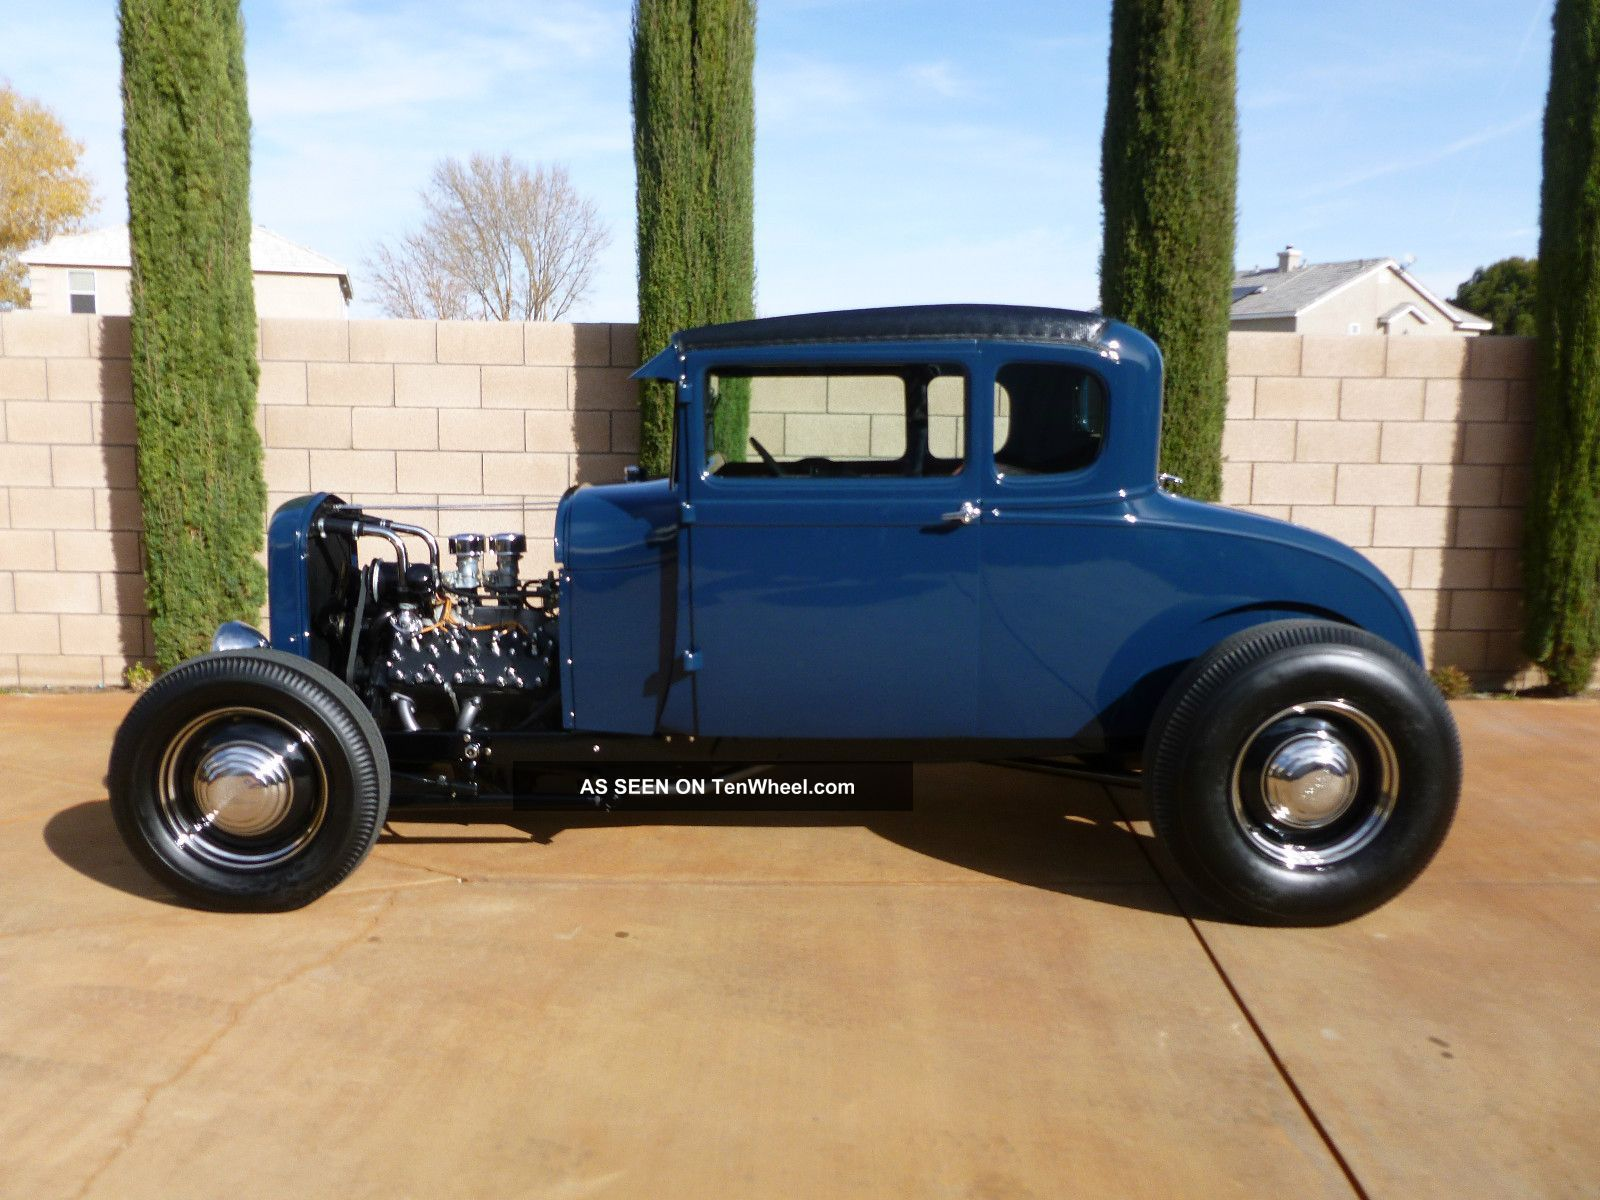 1929 ford model a coupe hot rod - Google Search | Hot rods ...